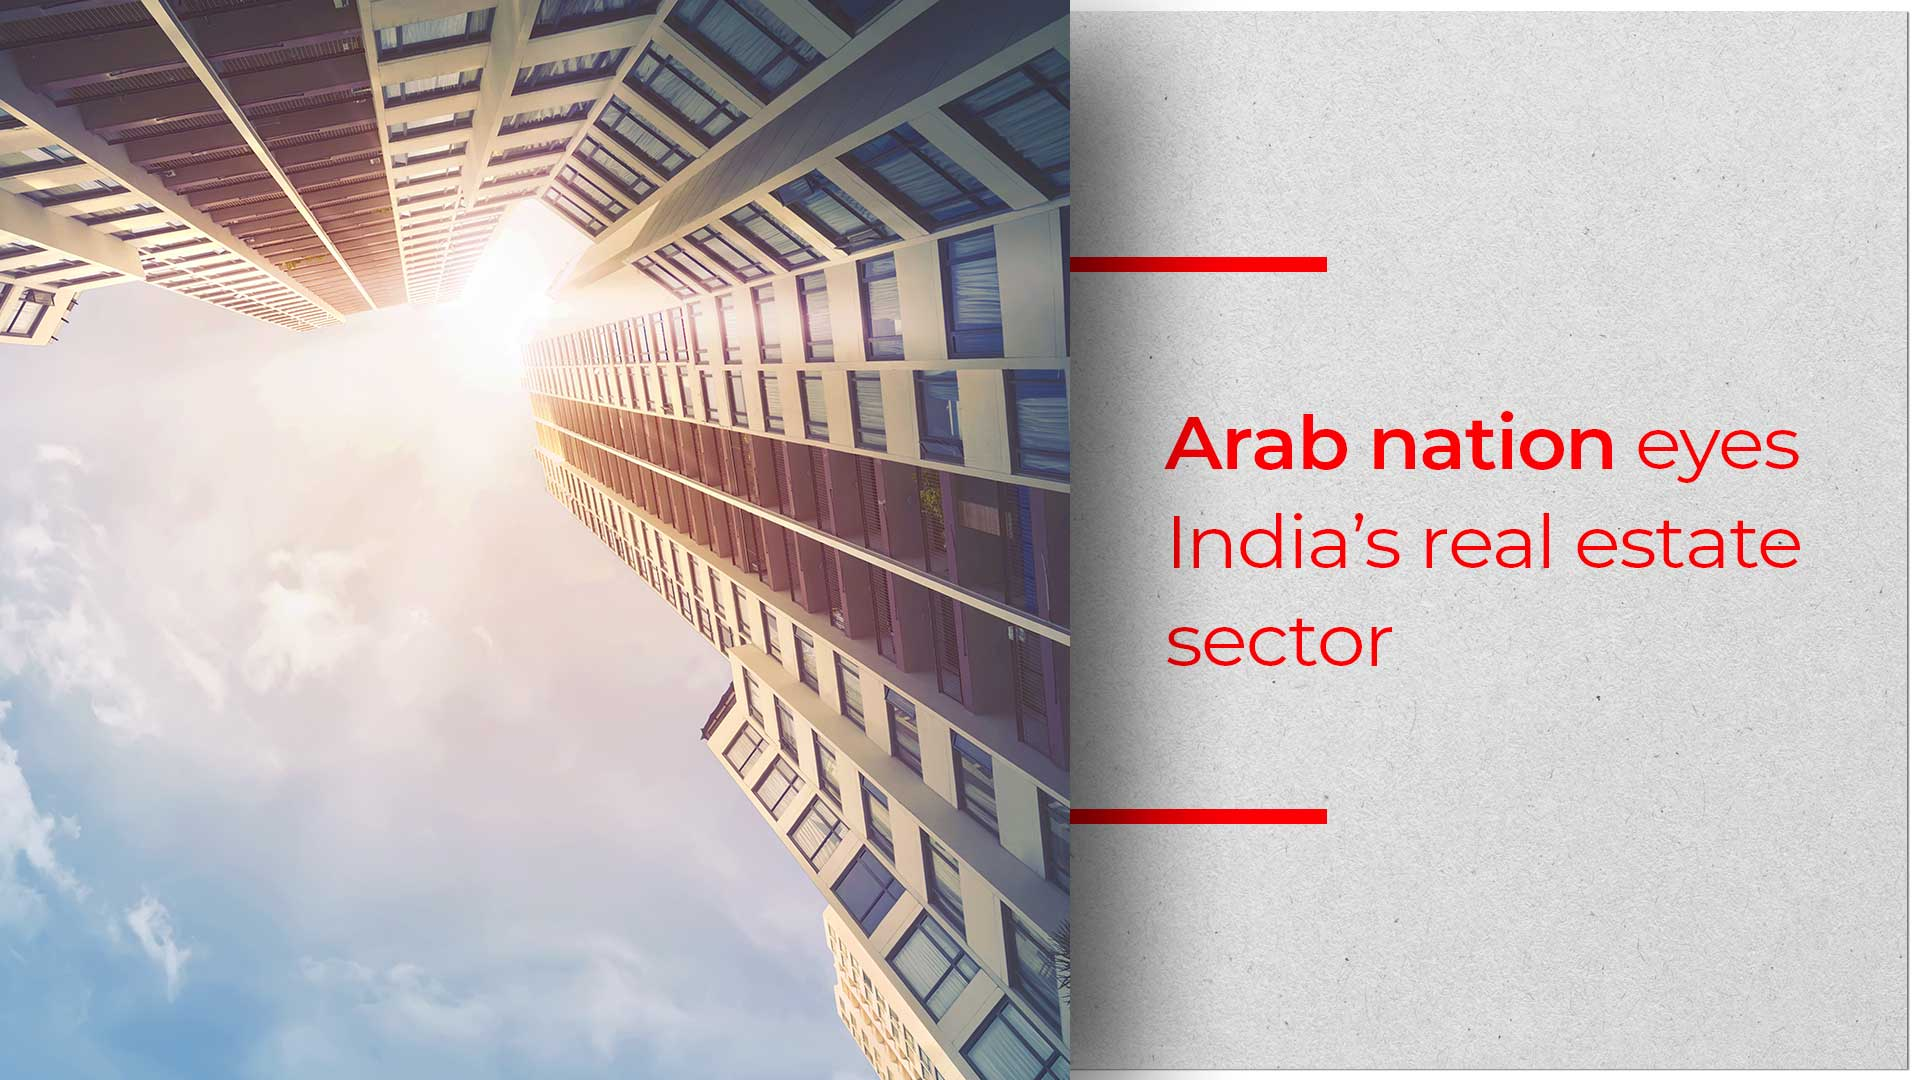 Saudi Arabia Hopes To Invest Heavily In Indian Properties